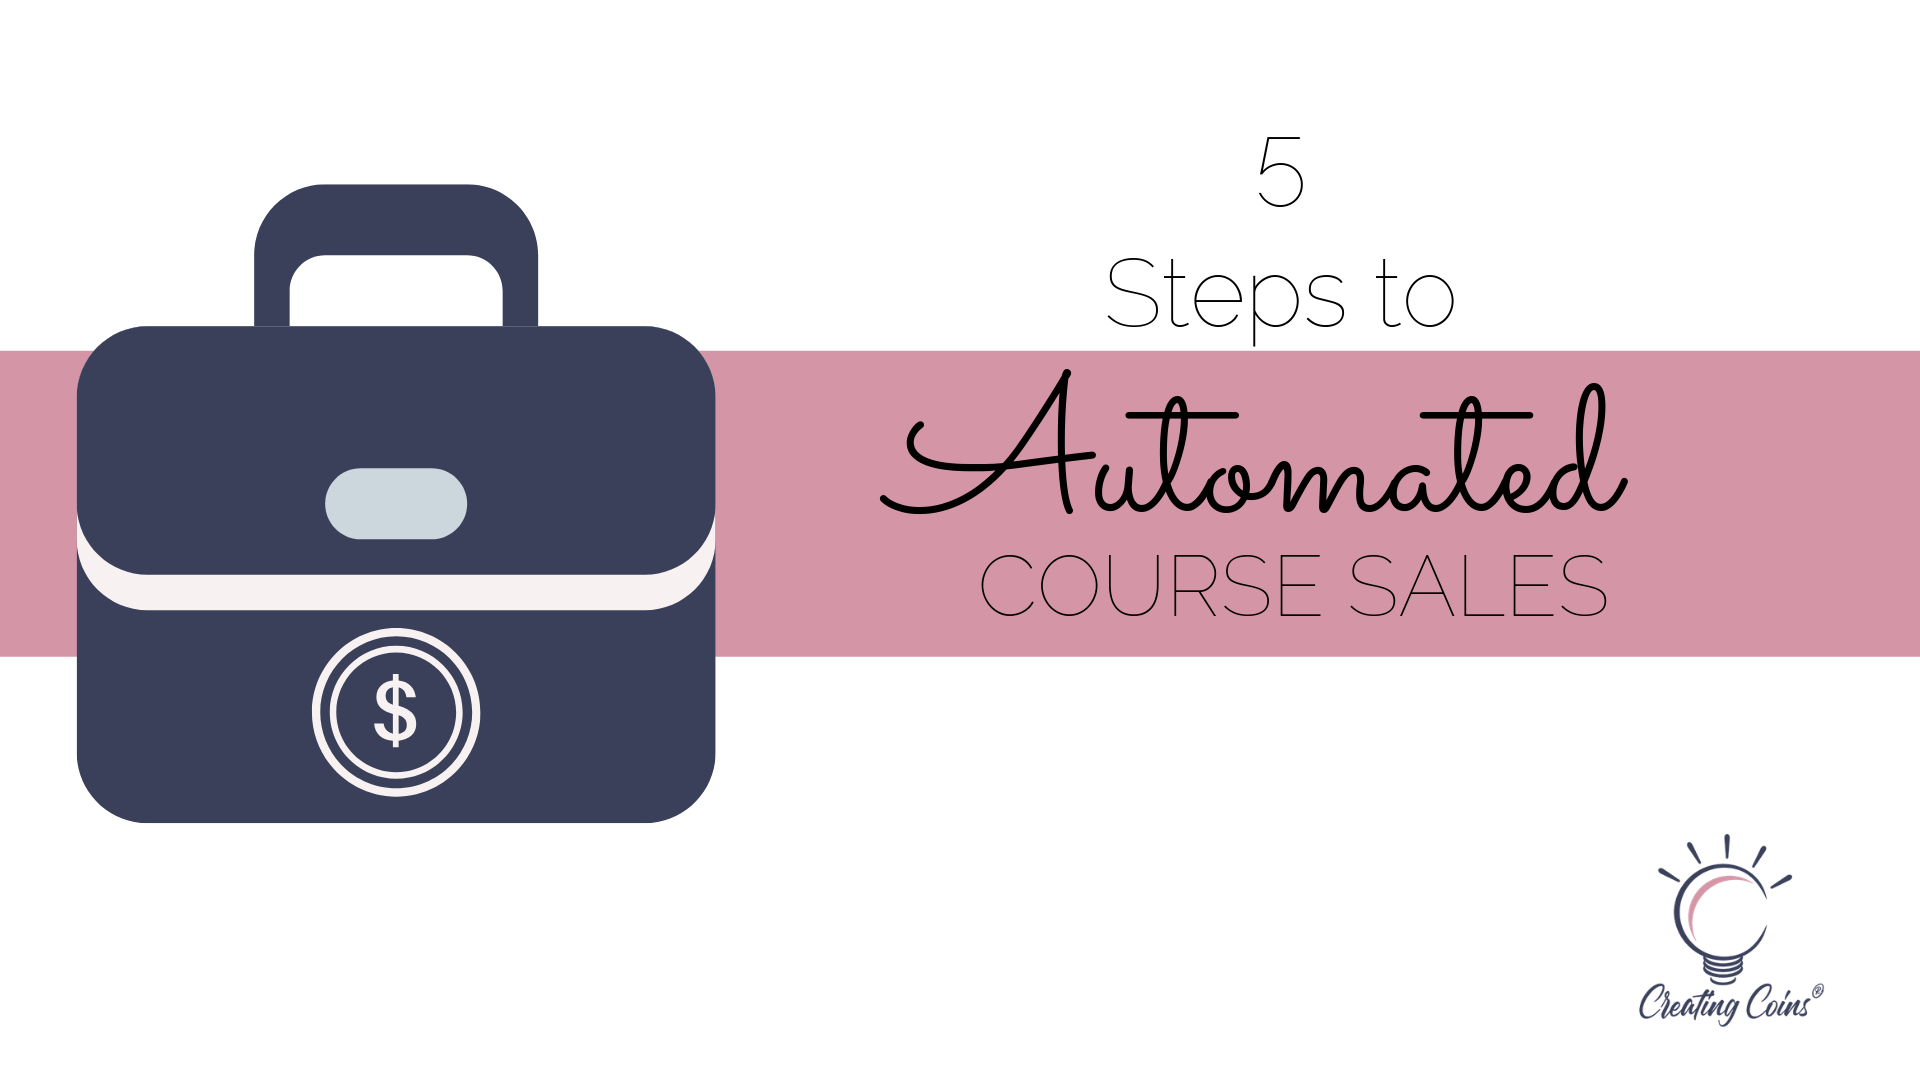 5 steps to automated course sales